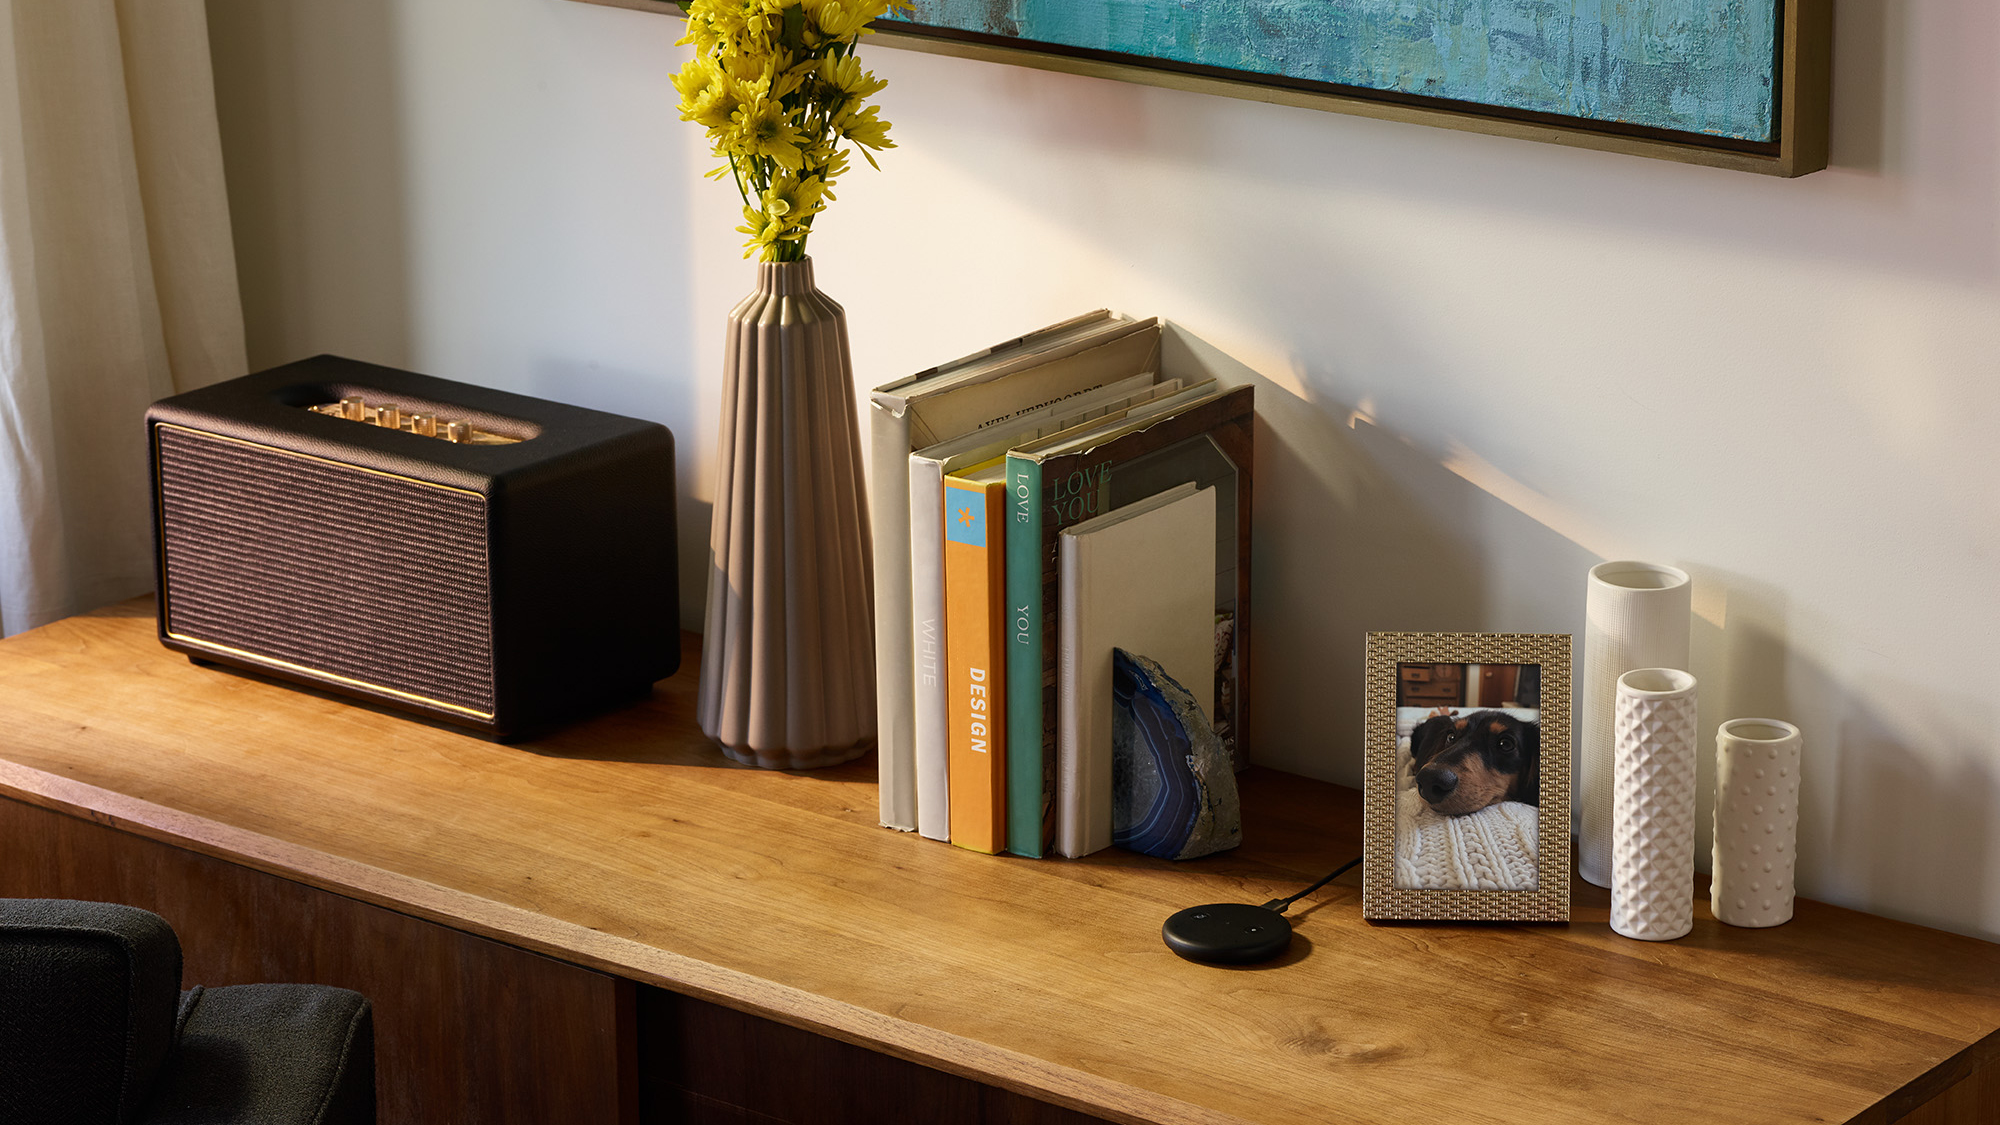 First Look: Amazon Echo Link and Amp are aiming for the audiophile market